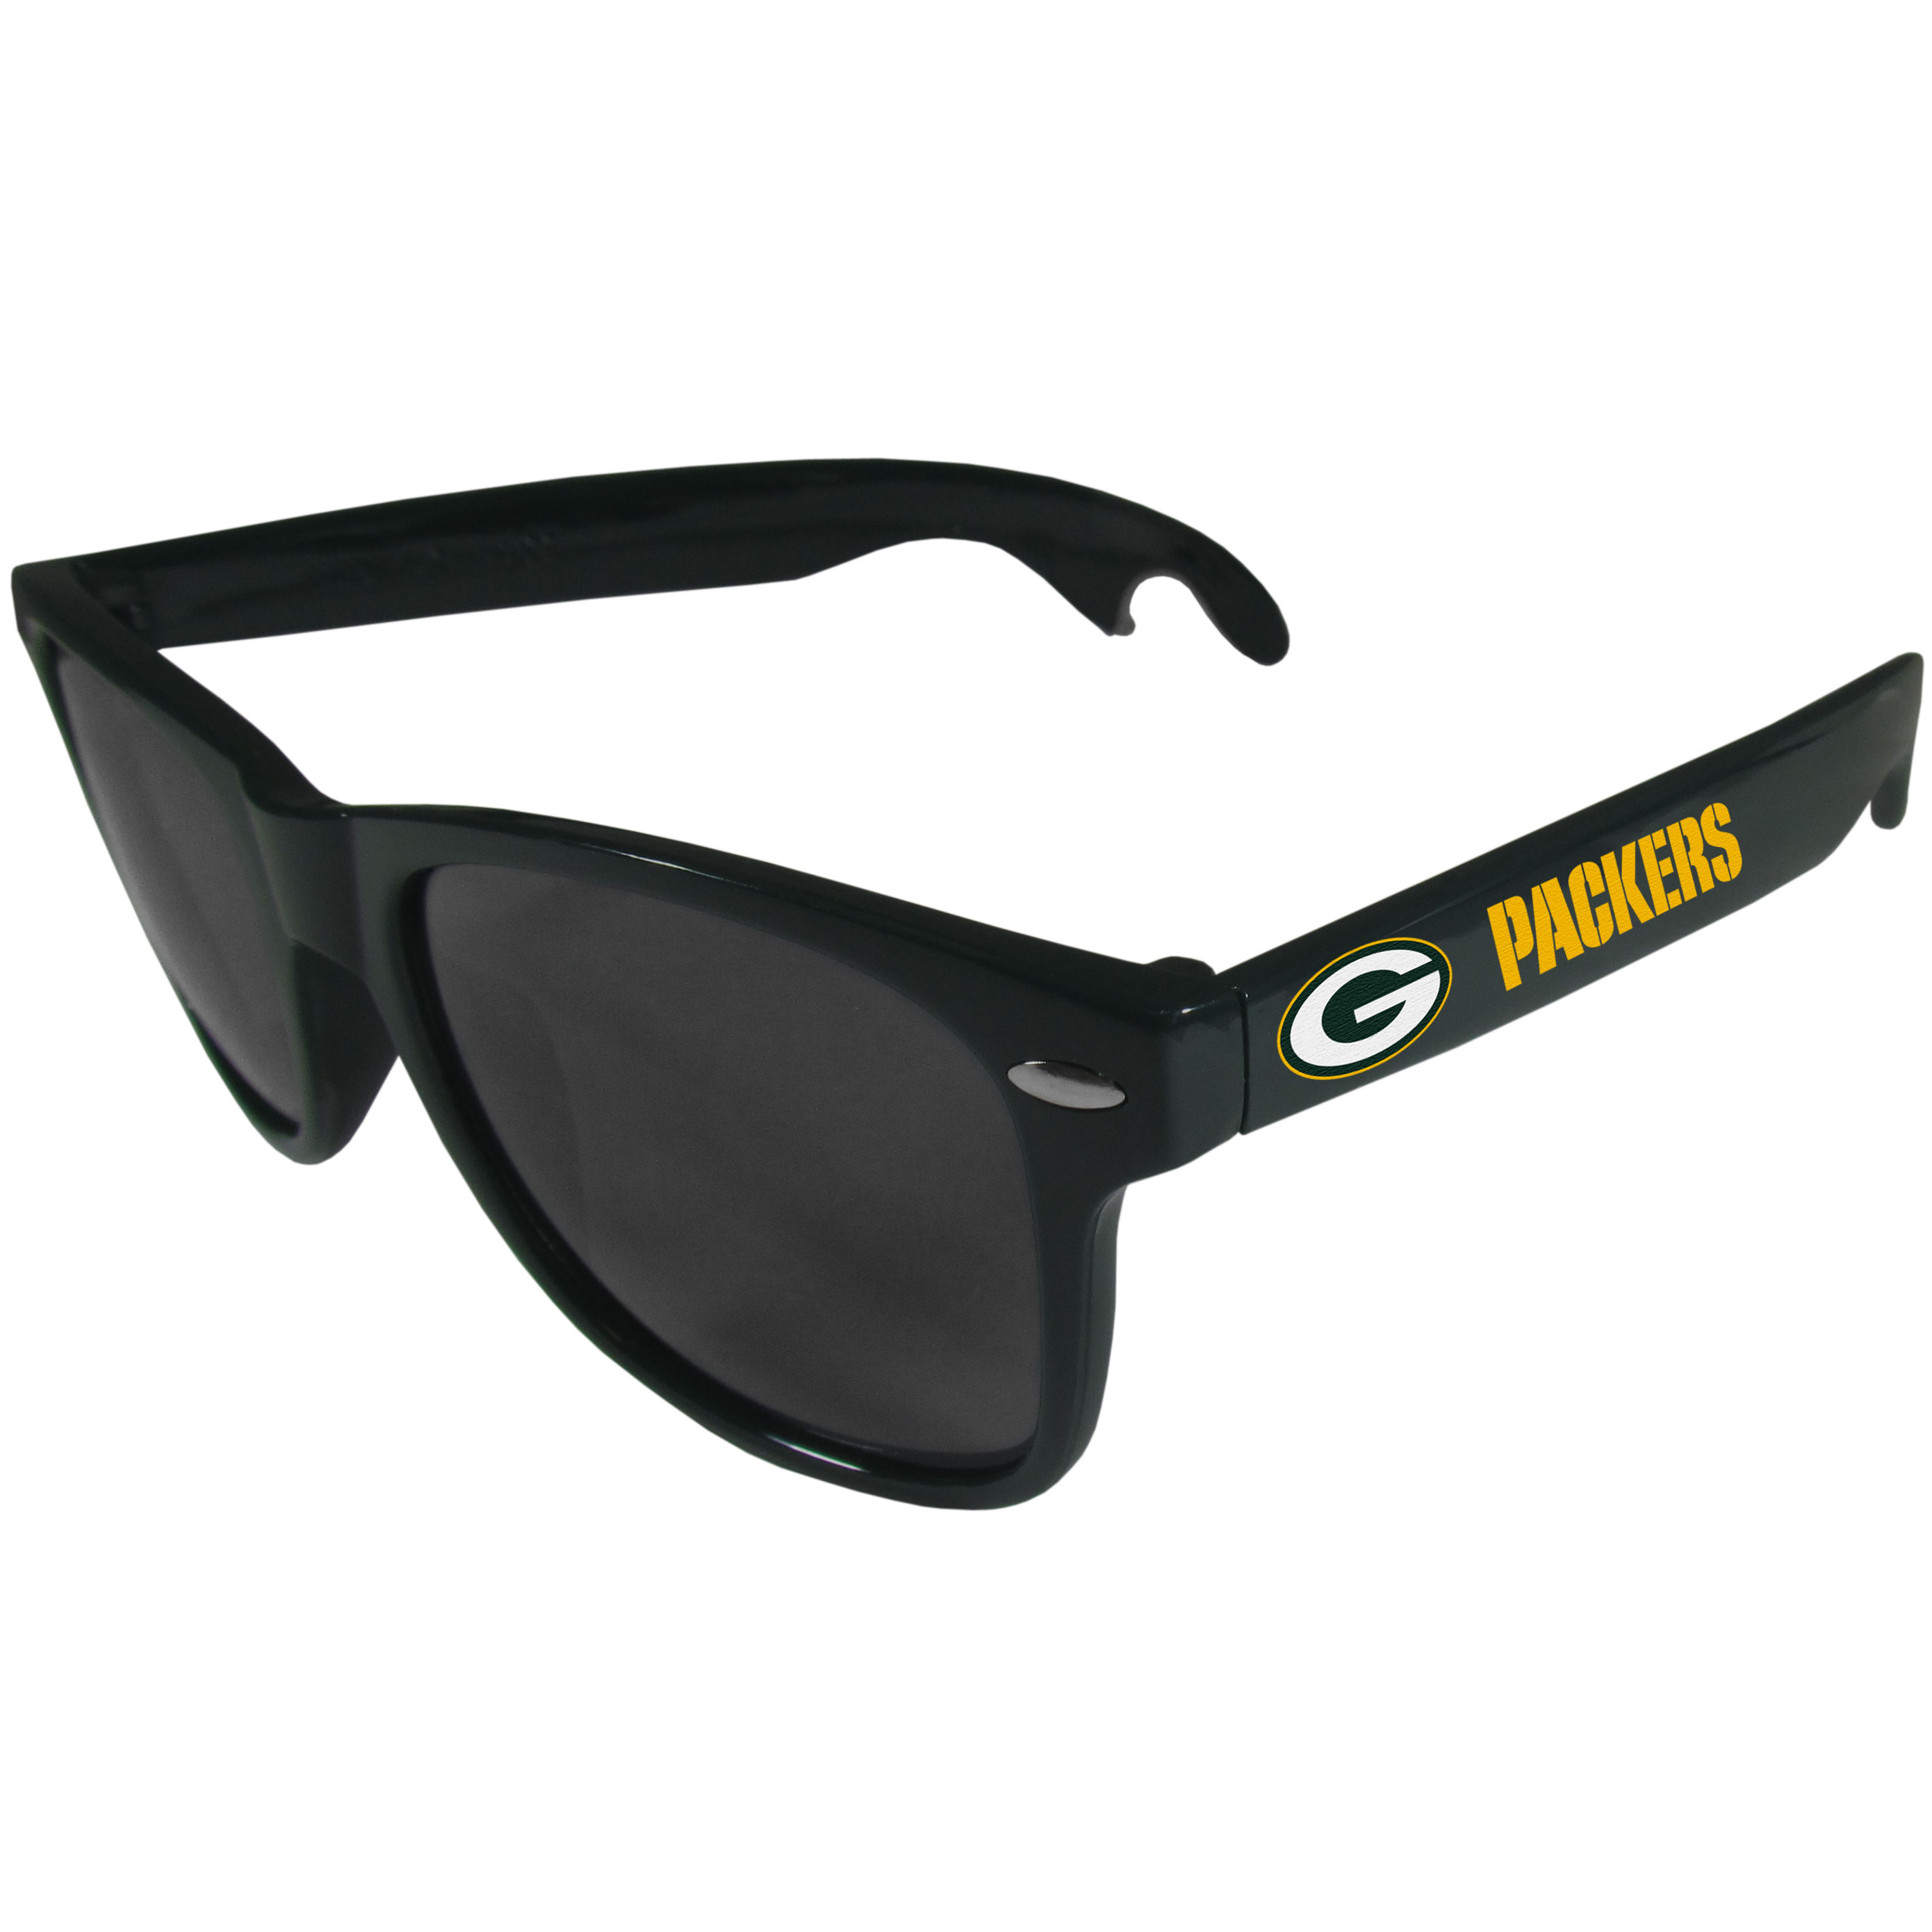 Green Bay Packers Beachfarer Bottle Opener Sunglasses, Dark Green - Seriously, these sunglasses open bottles! Keep the party going with these amazing Green Bay Packers bottle opener sunglasses. The stylish retro frames feature team designs on the arms and functional bottle openers on the end of the arms. Whether you are at the beach or having a backyard BBQ on game day, these shades will keep your eyes protected with 100% UVA/UVB protection and keep you hydrated with the handy bottle opener arms.